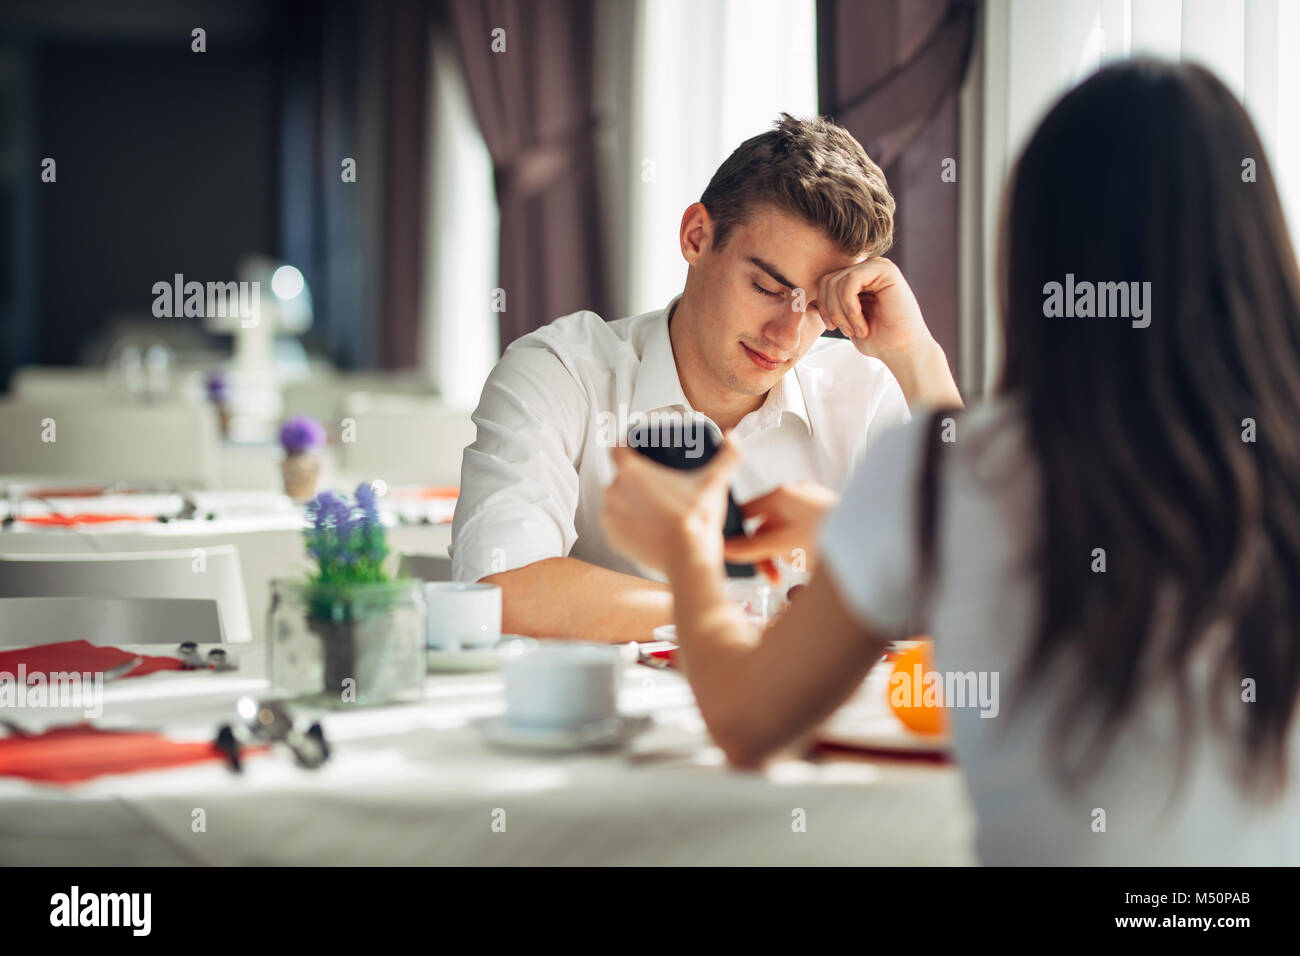 Disappointed stressed man getting fired.Attacked and innocent man being accused.Loosing job.Relationship problems,divorce,break - Stock Image